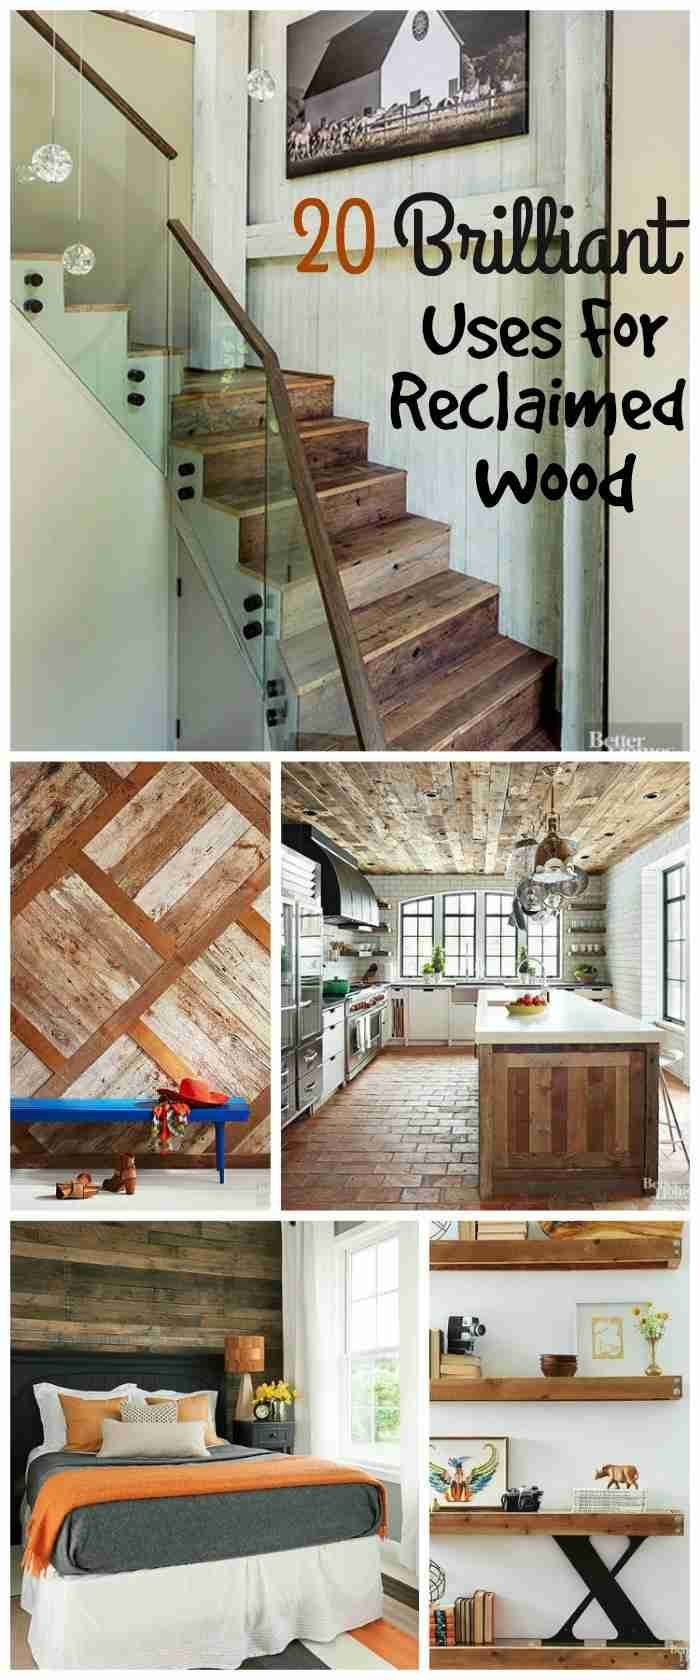 Diy home decor wood  Inspiring DIY Home Decor Ideas  Woods Small space decorating and